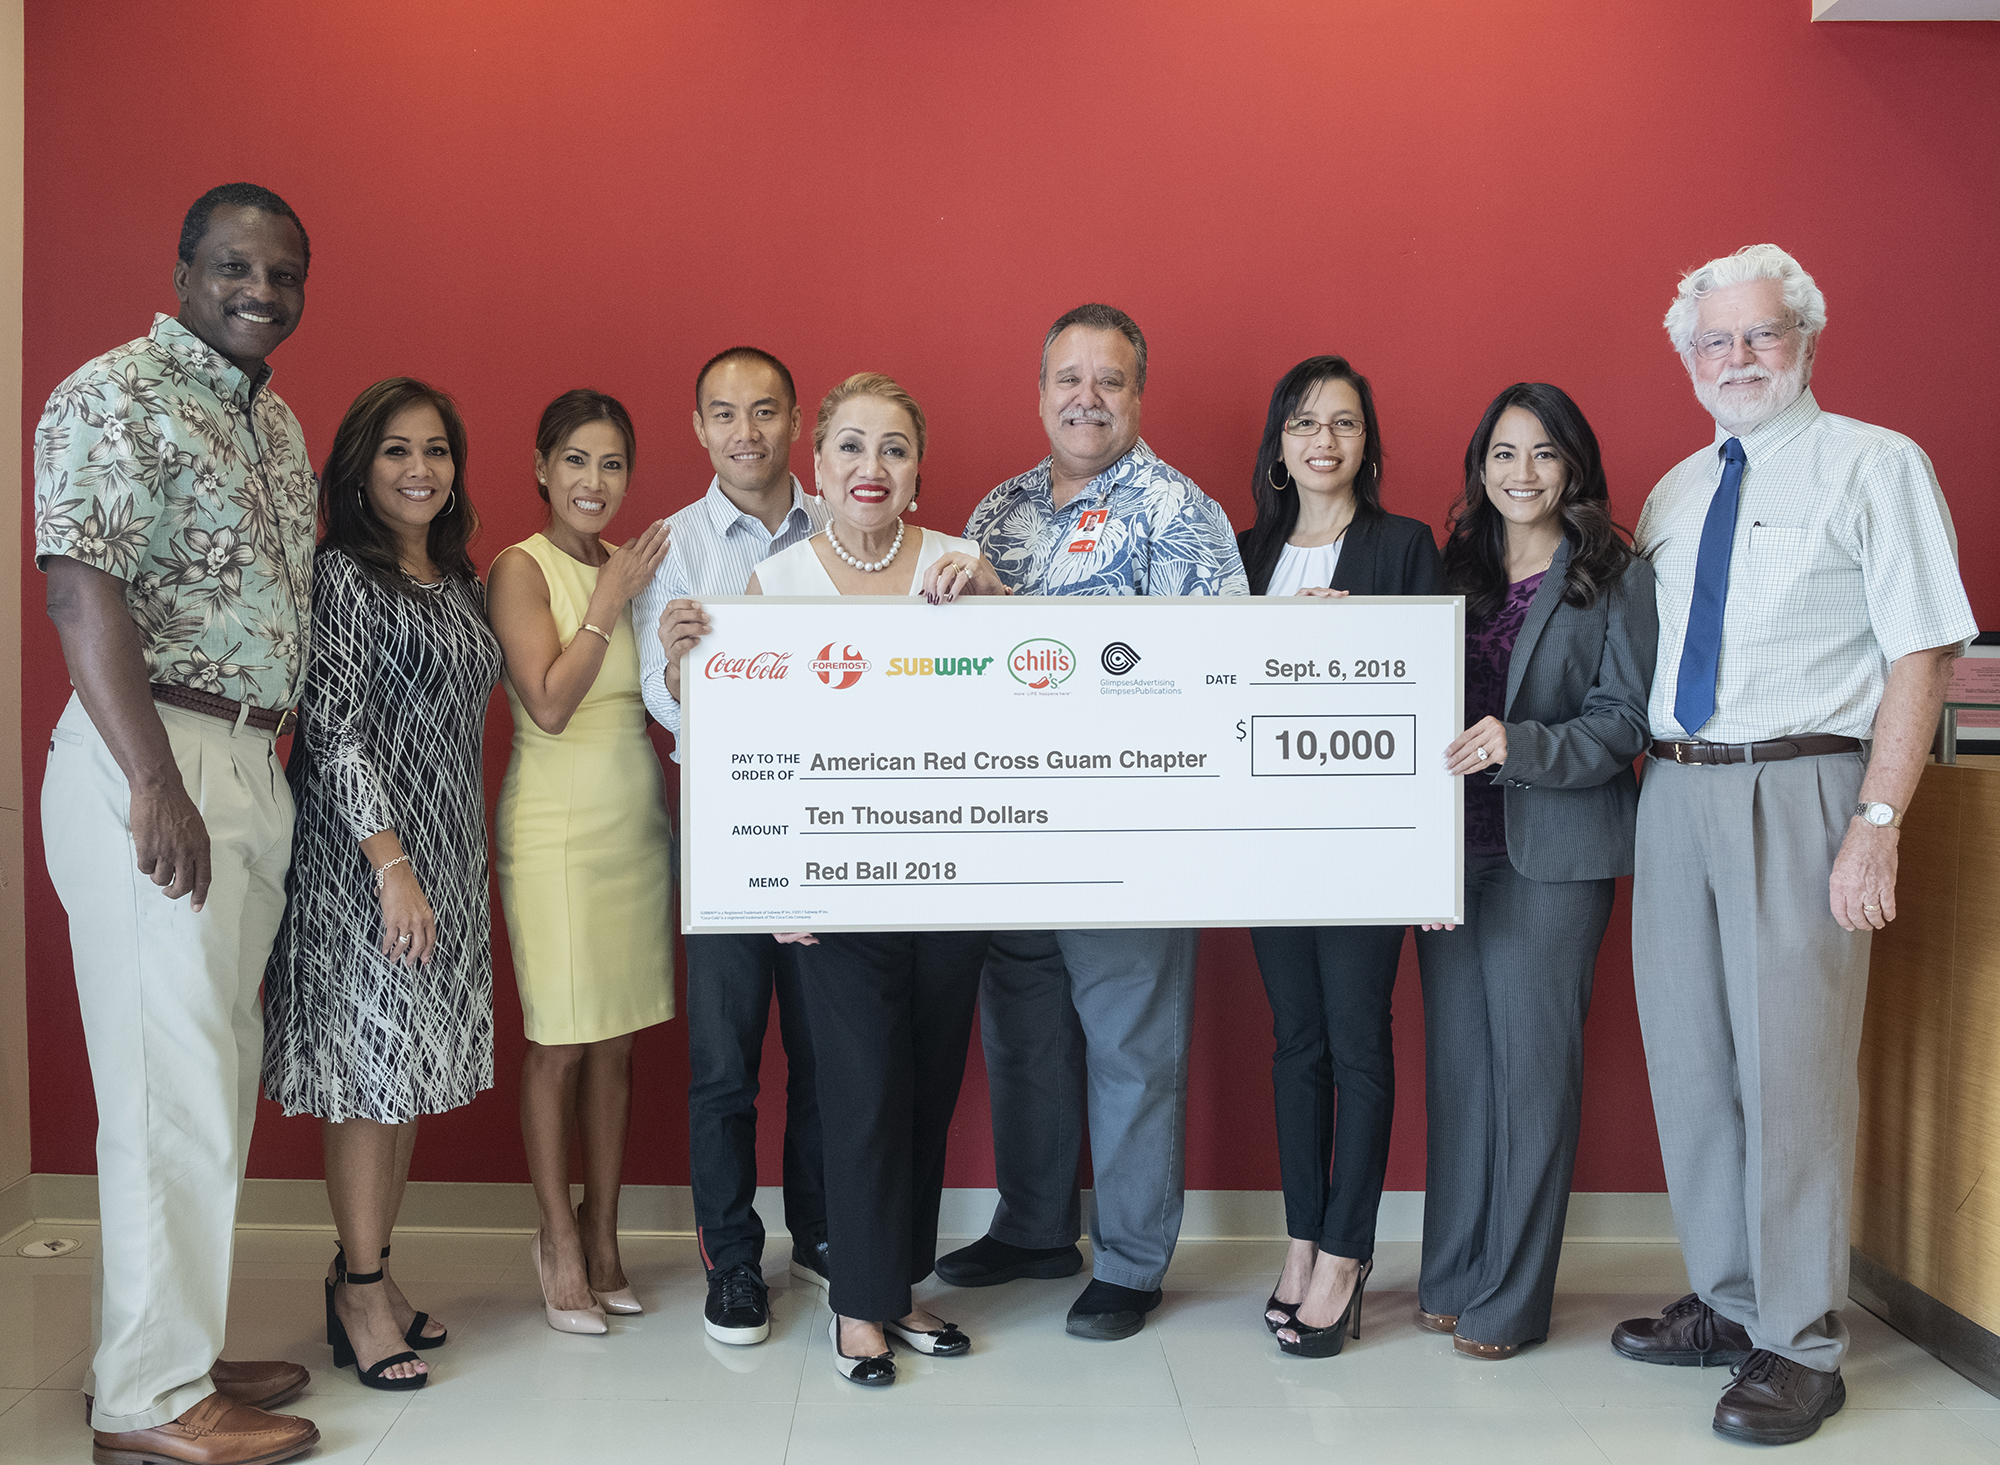 Group donates $10,000 to American Red Cross